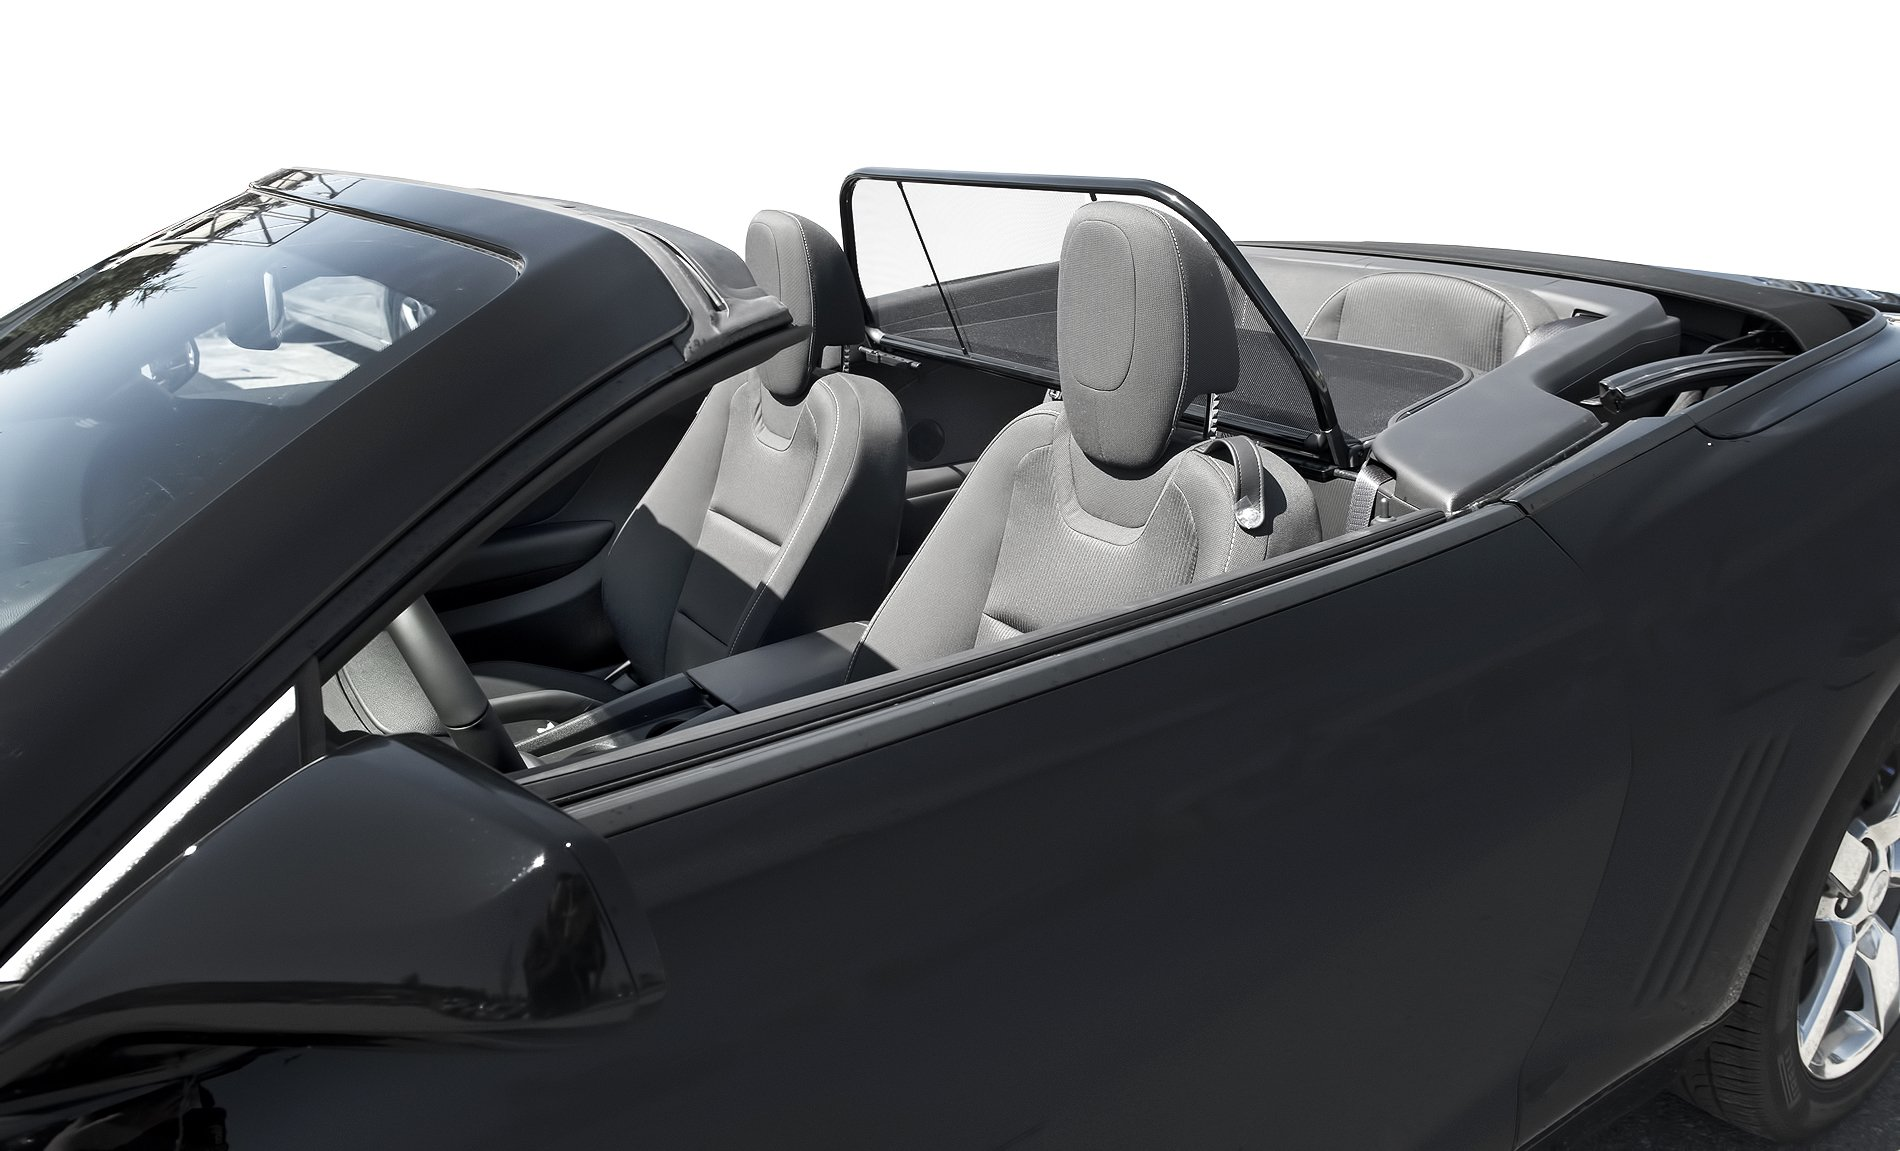 Camaro Convertible 2011 to 2015 Love The Drive™ Wind Deflector Also Known As: Wind Screen, Windscreen, Windstop and Wind Blocker